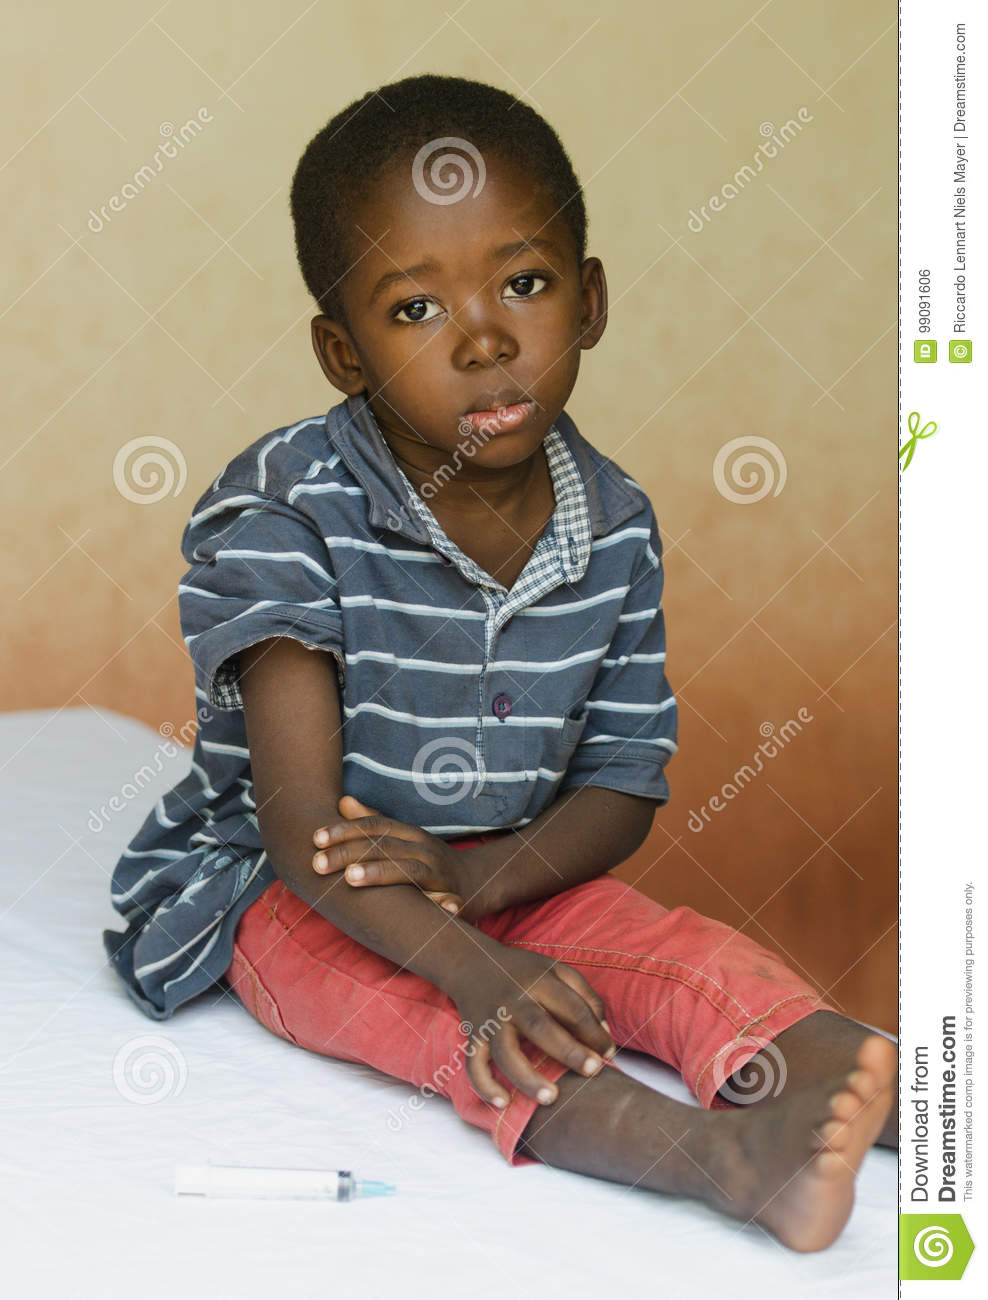 Little boy sitting in a hospital waiting to get an injection